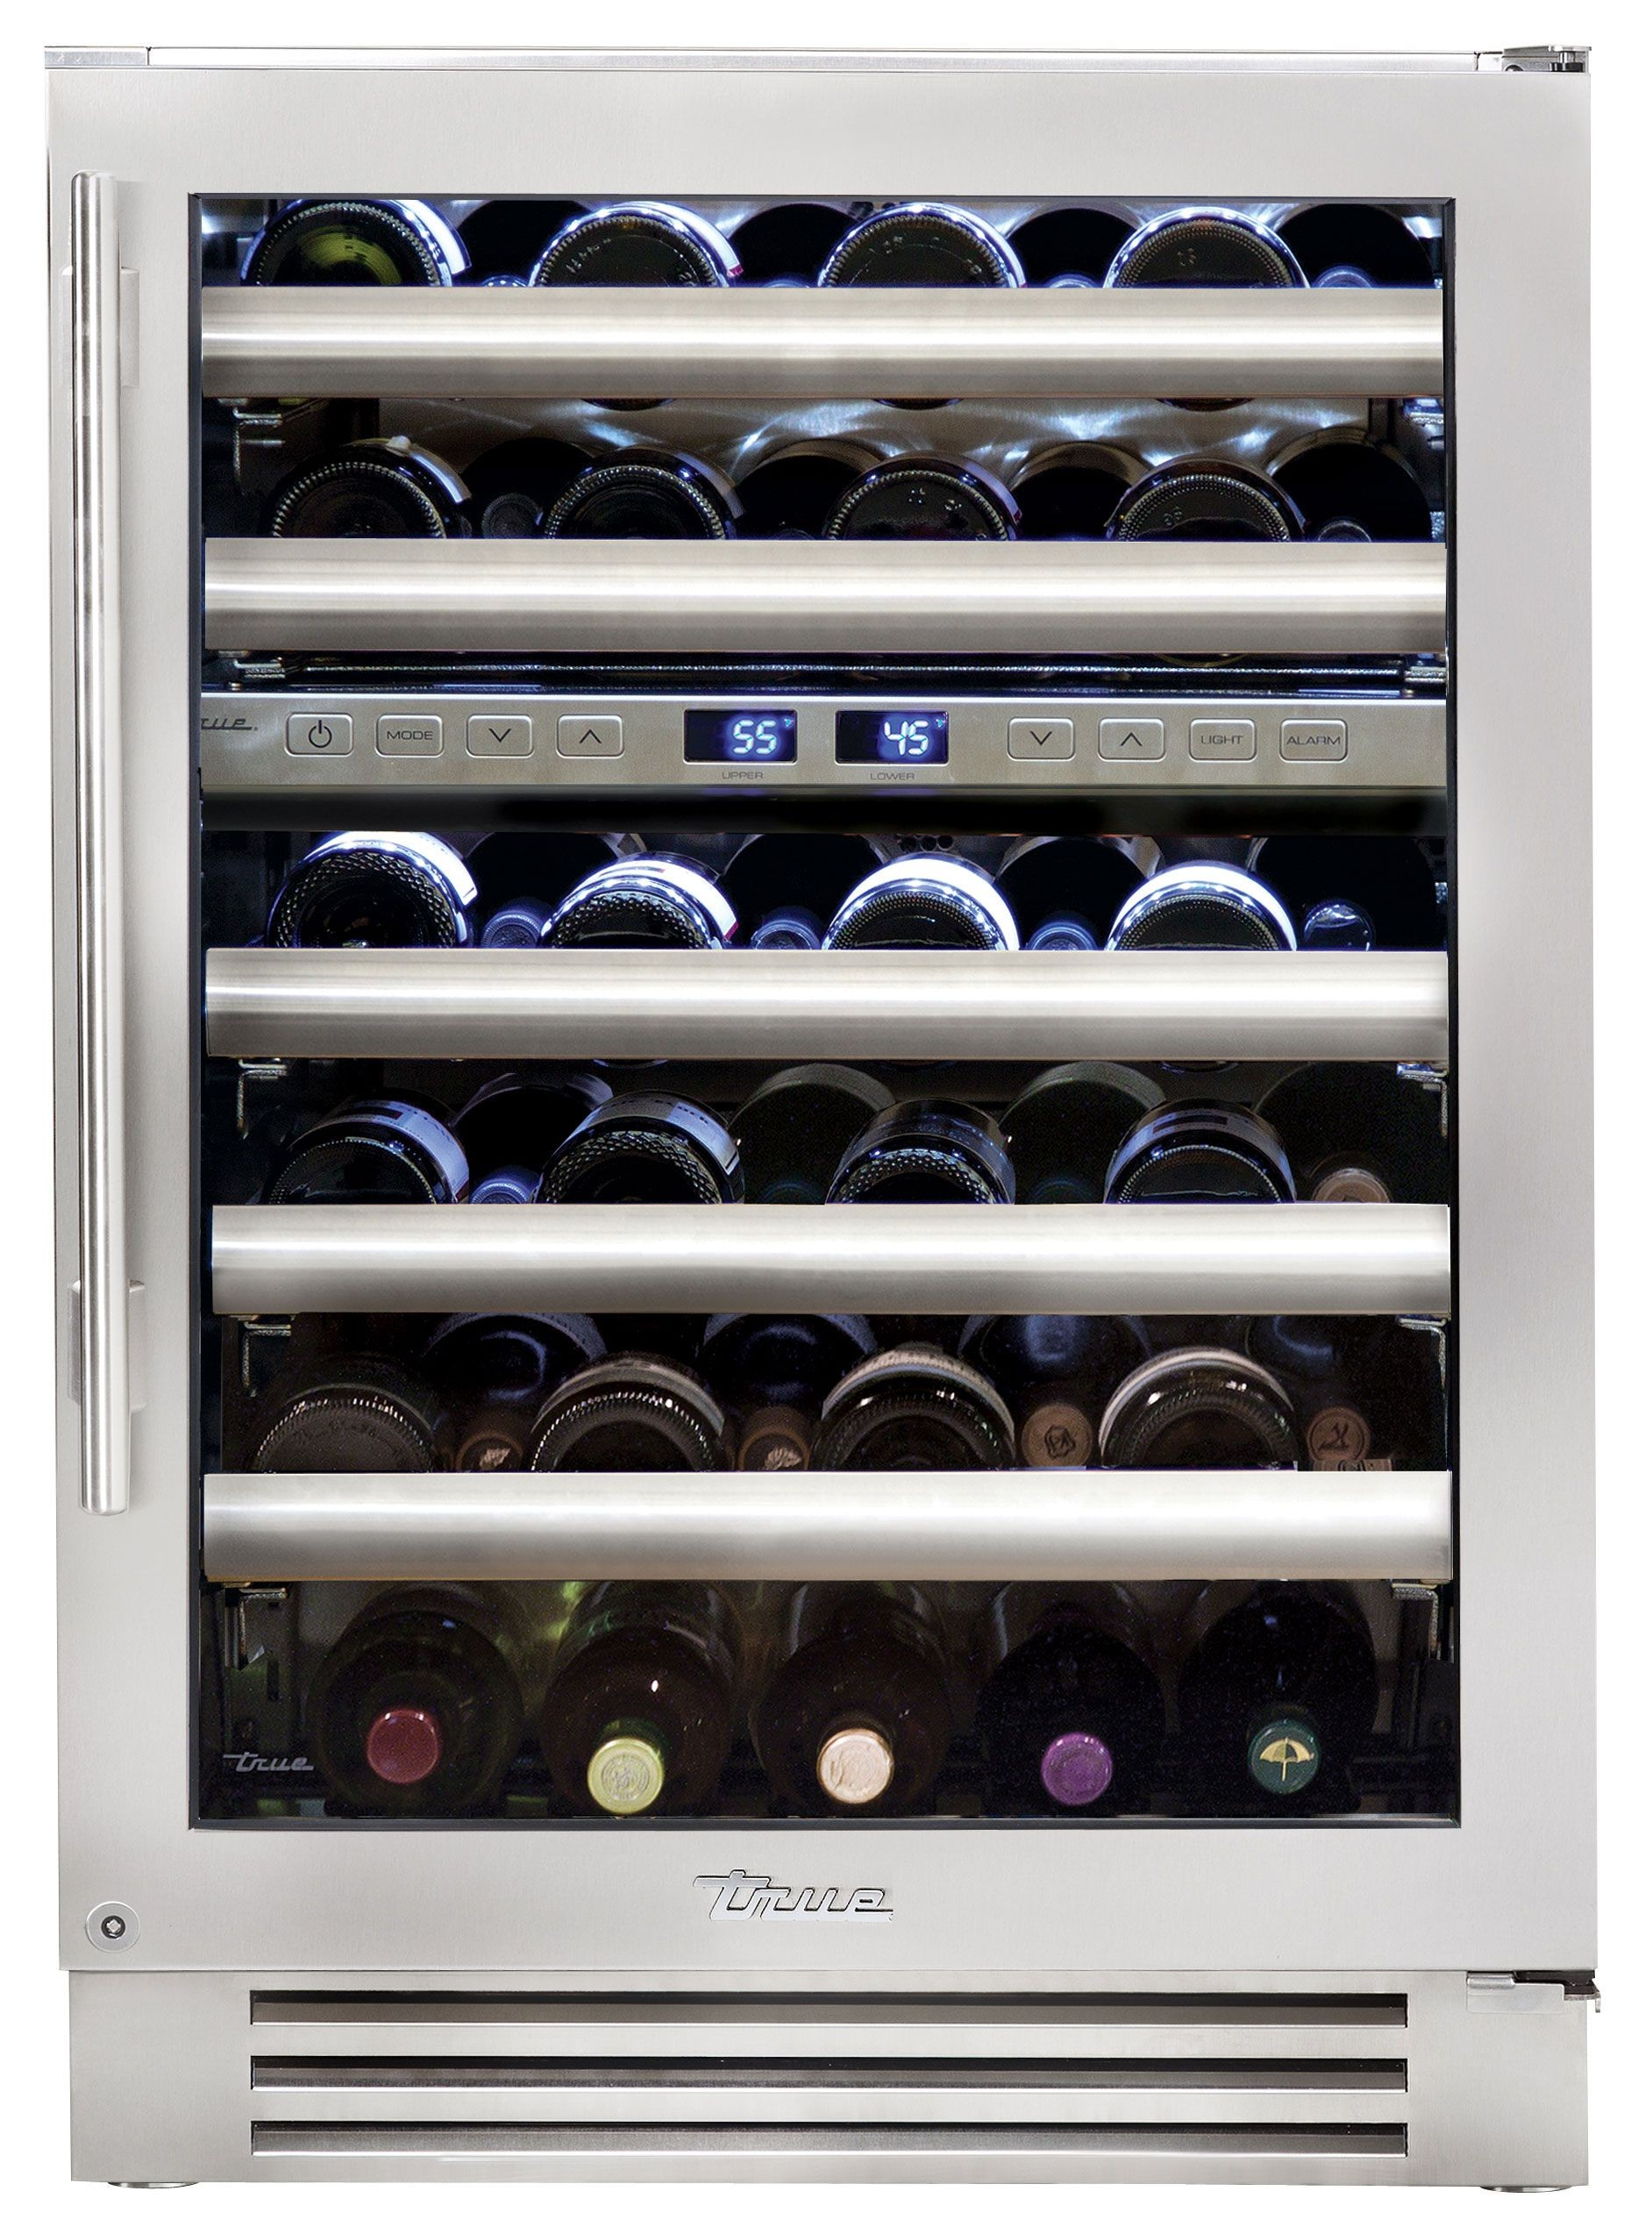 True Professional Series TWC-24DZ-R-SG-A Wine Cabinet, 45 bottle capacity, Zero-clearance hinging, Patented TriLumina LED lighting, 5 glide out wine racks and 1 floor cradle, 2 independent zones